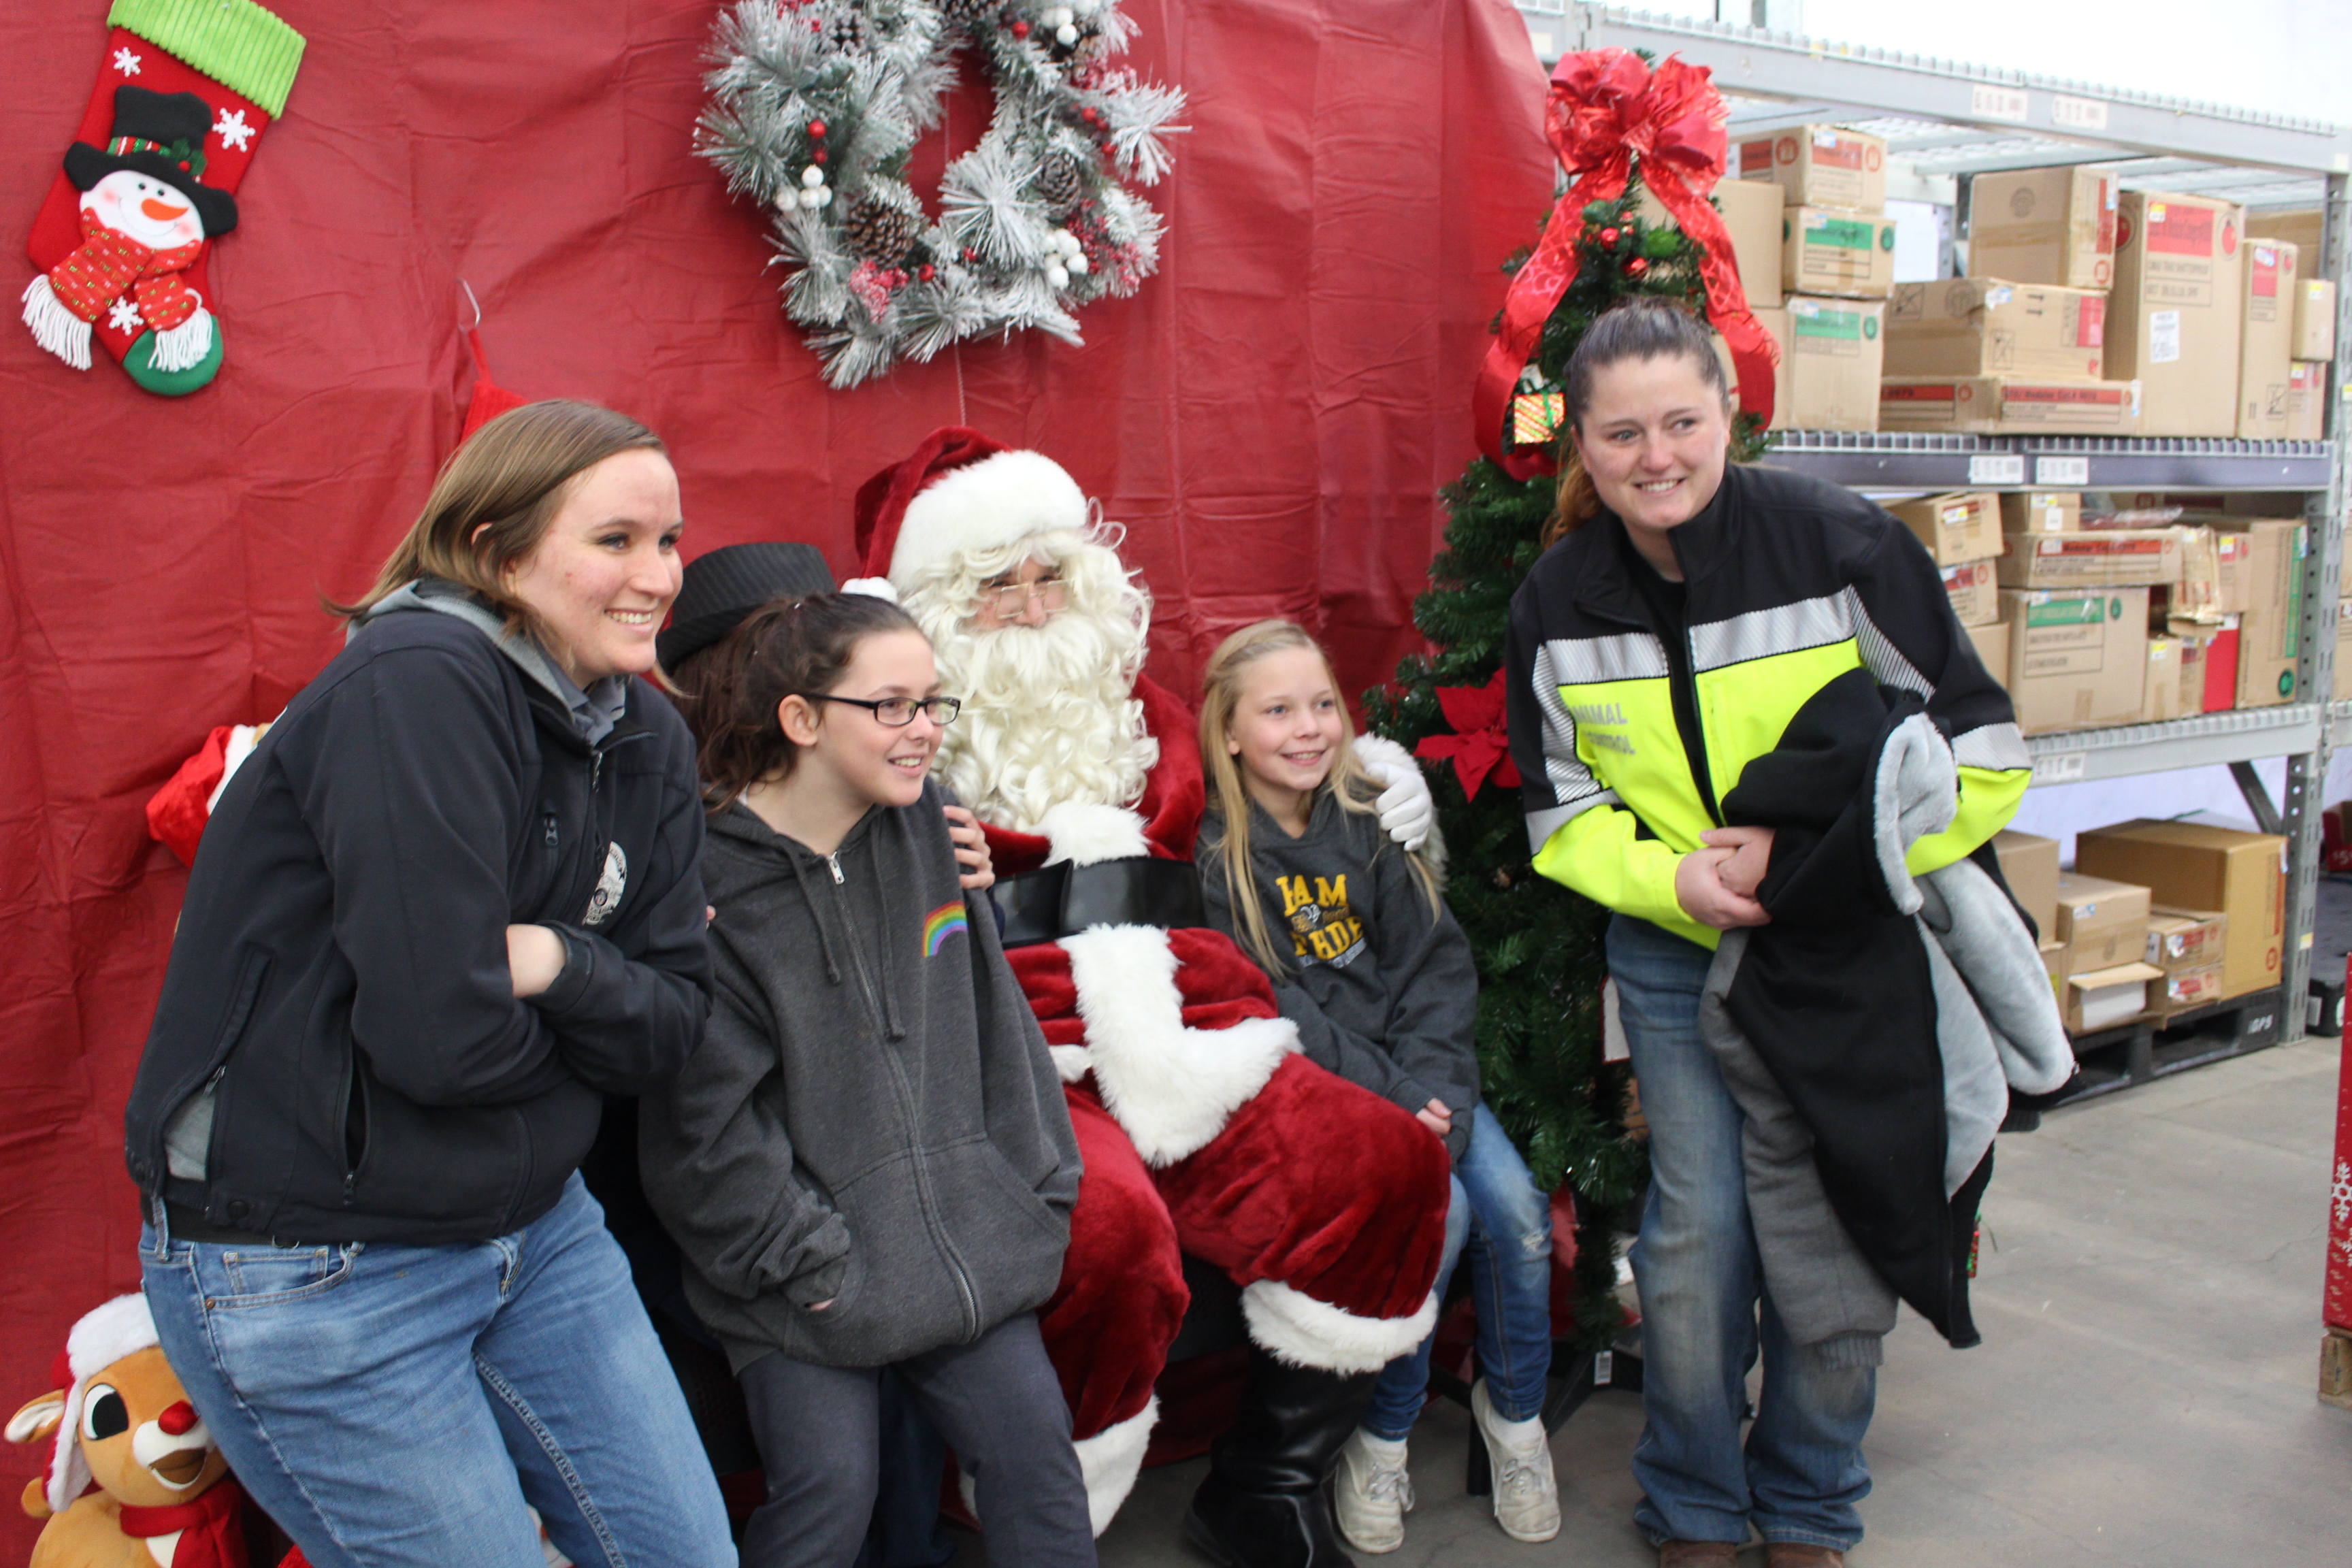 Santa Claus poses for photos with the kids during the Shop with a Cop event Saturday. St. George, Utah, Dec. 10, 2016 | Photo by Tracie Sullivan, St. George / Cedar City News